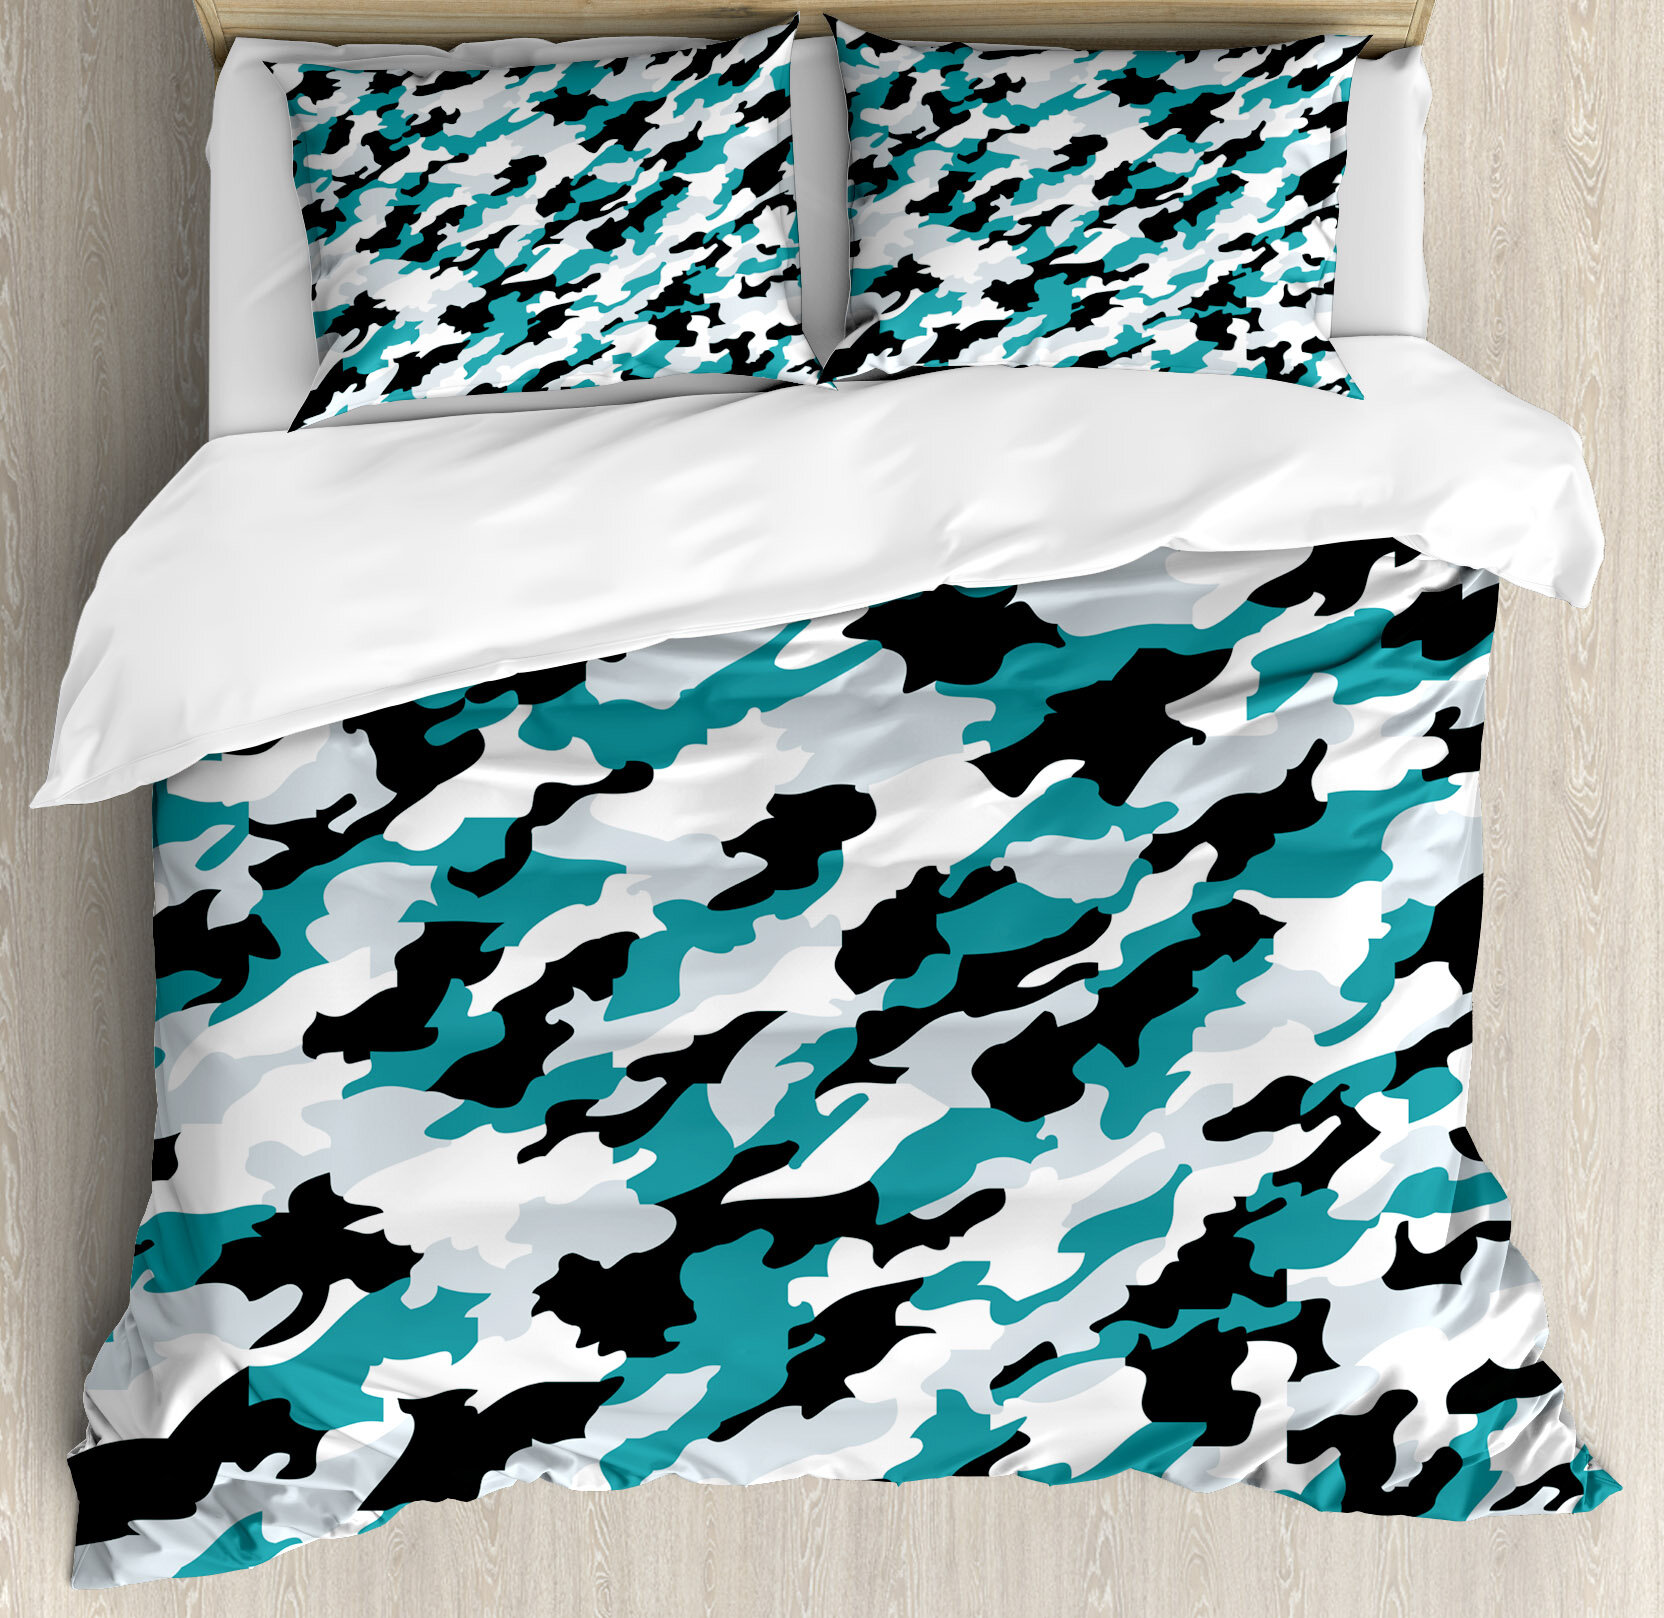 Camouflage Queen Duvet Covers Sets You Ll Love In 2021 Wayfair